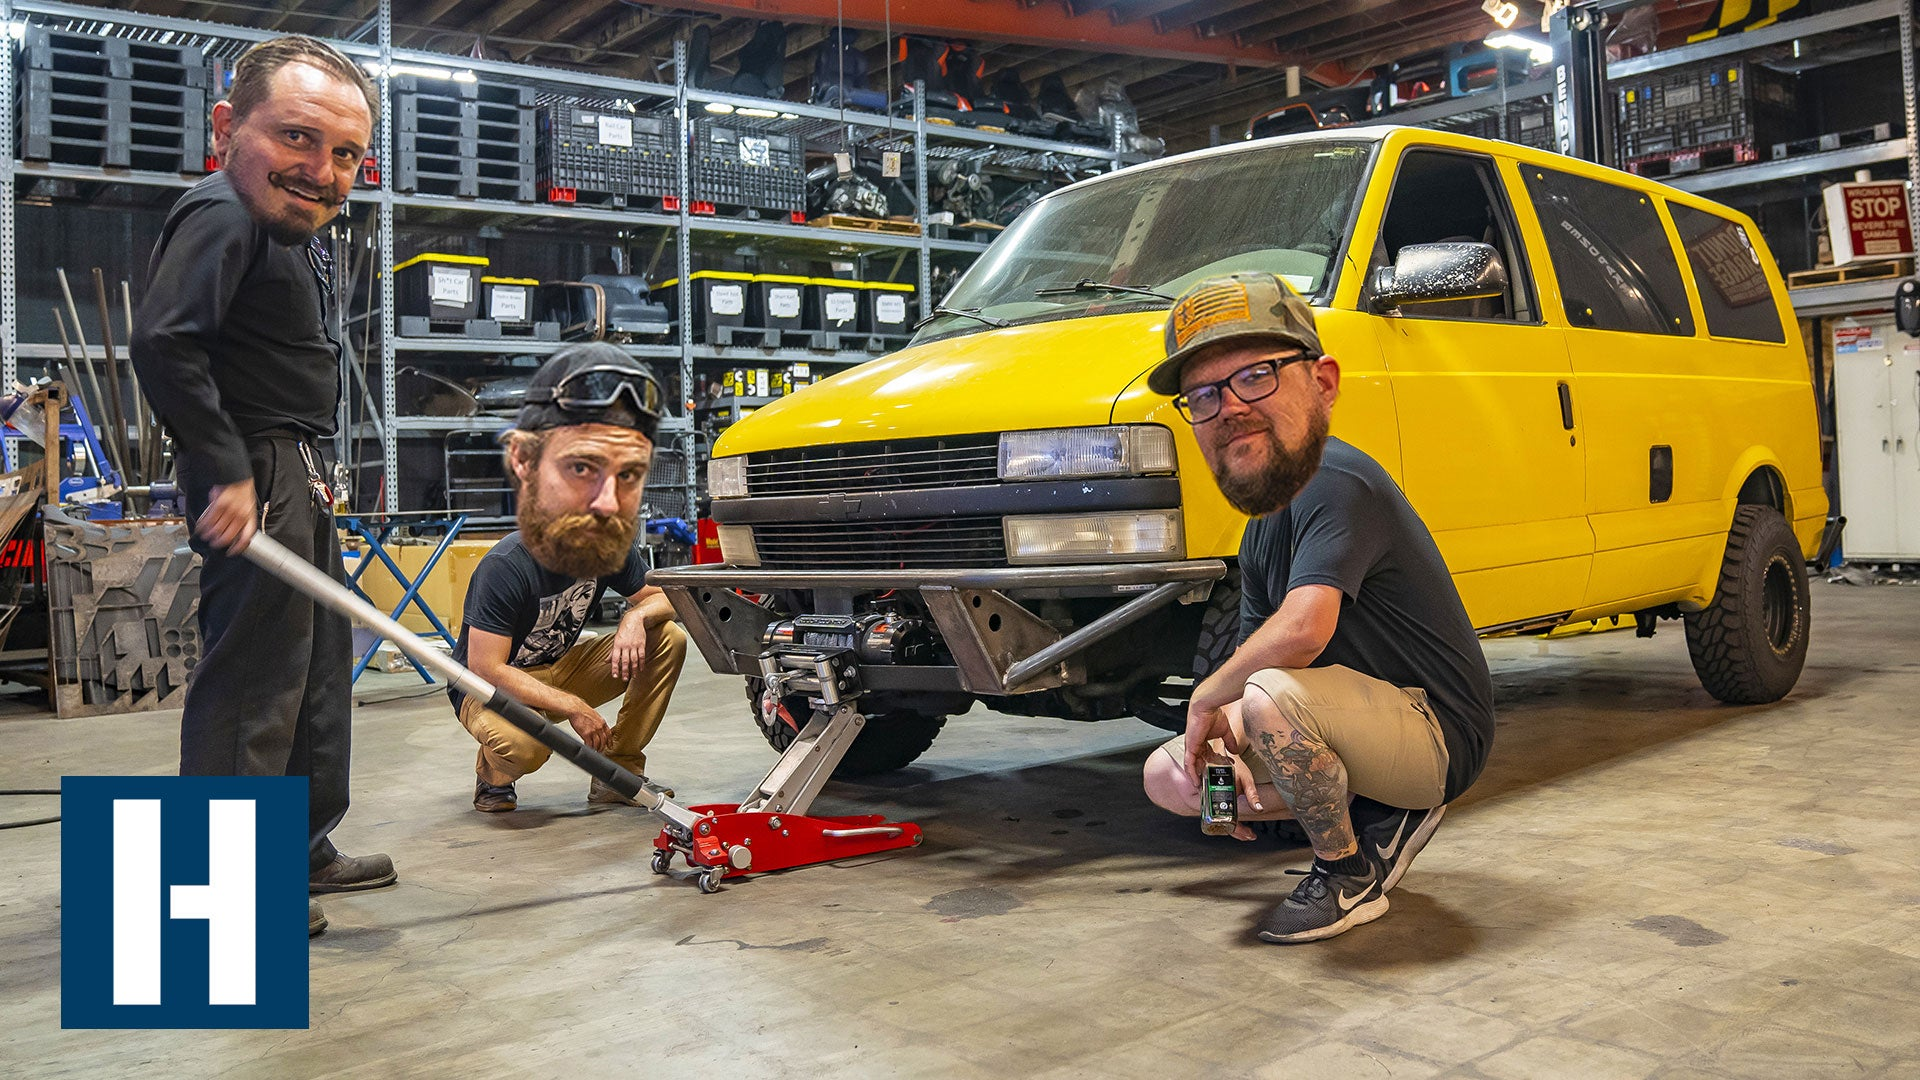 Chevy Astro Surfari Overland Project Gets a Custom Plasma